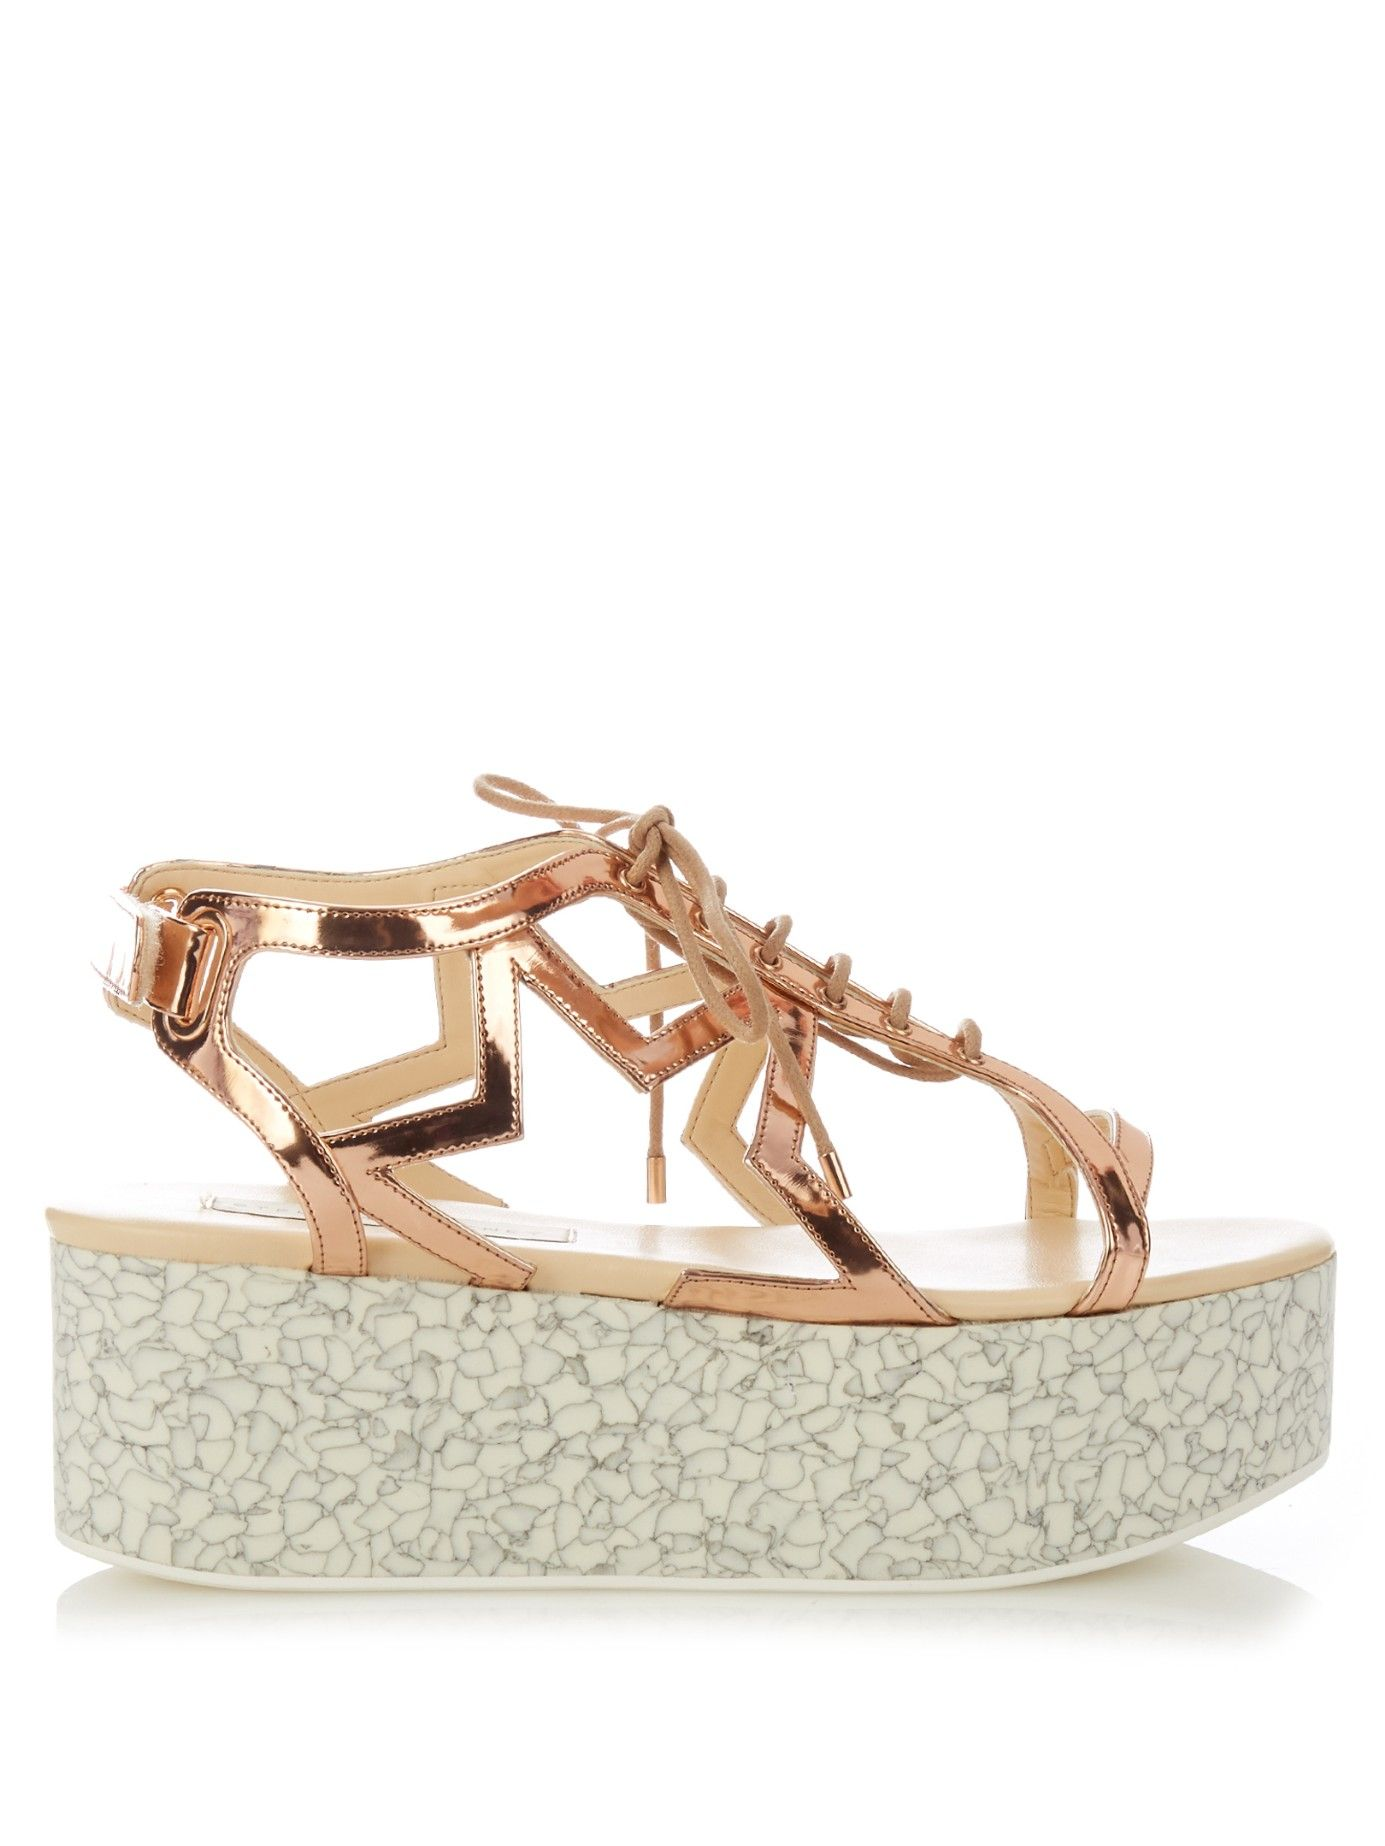 0895f8afdfdf Lucy metallic faux-leather flatform sandals